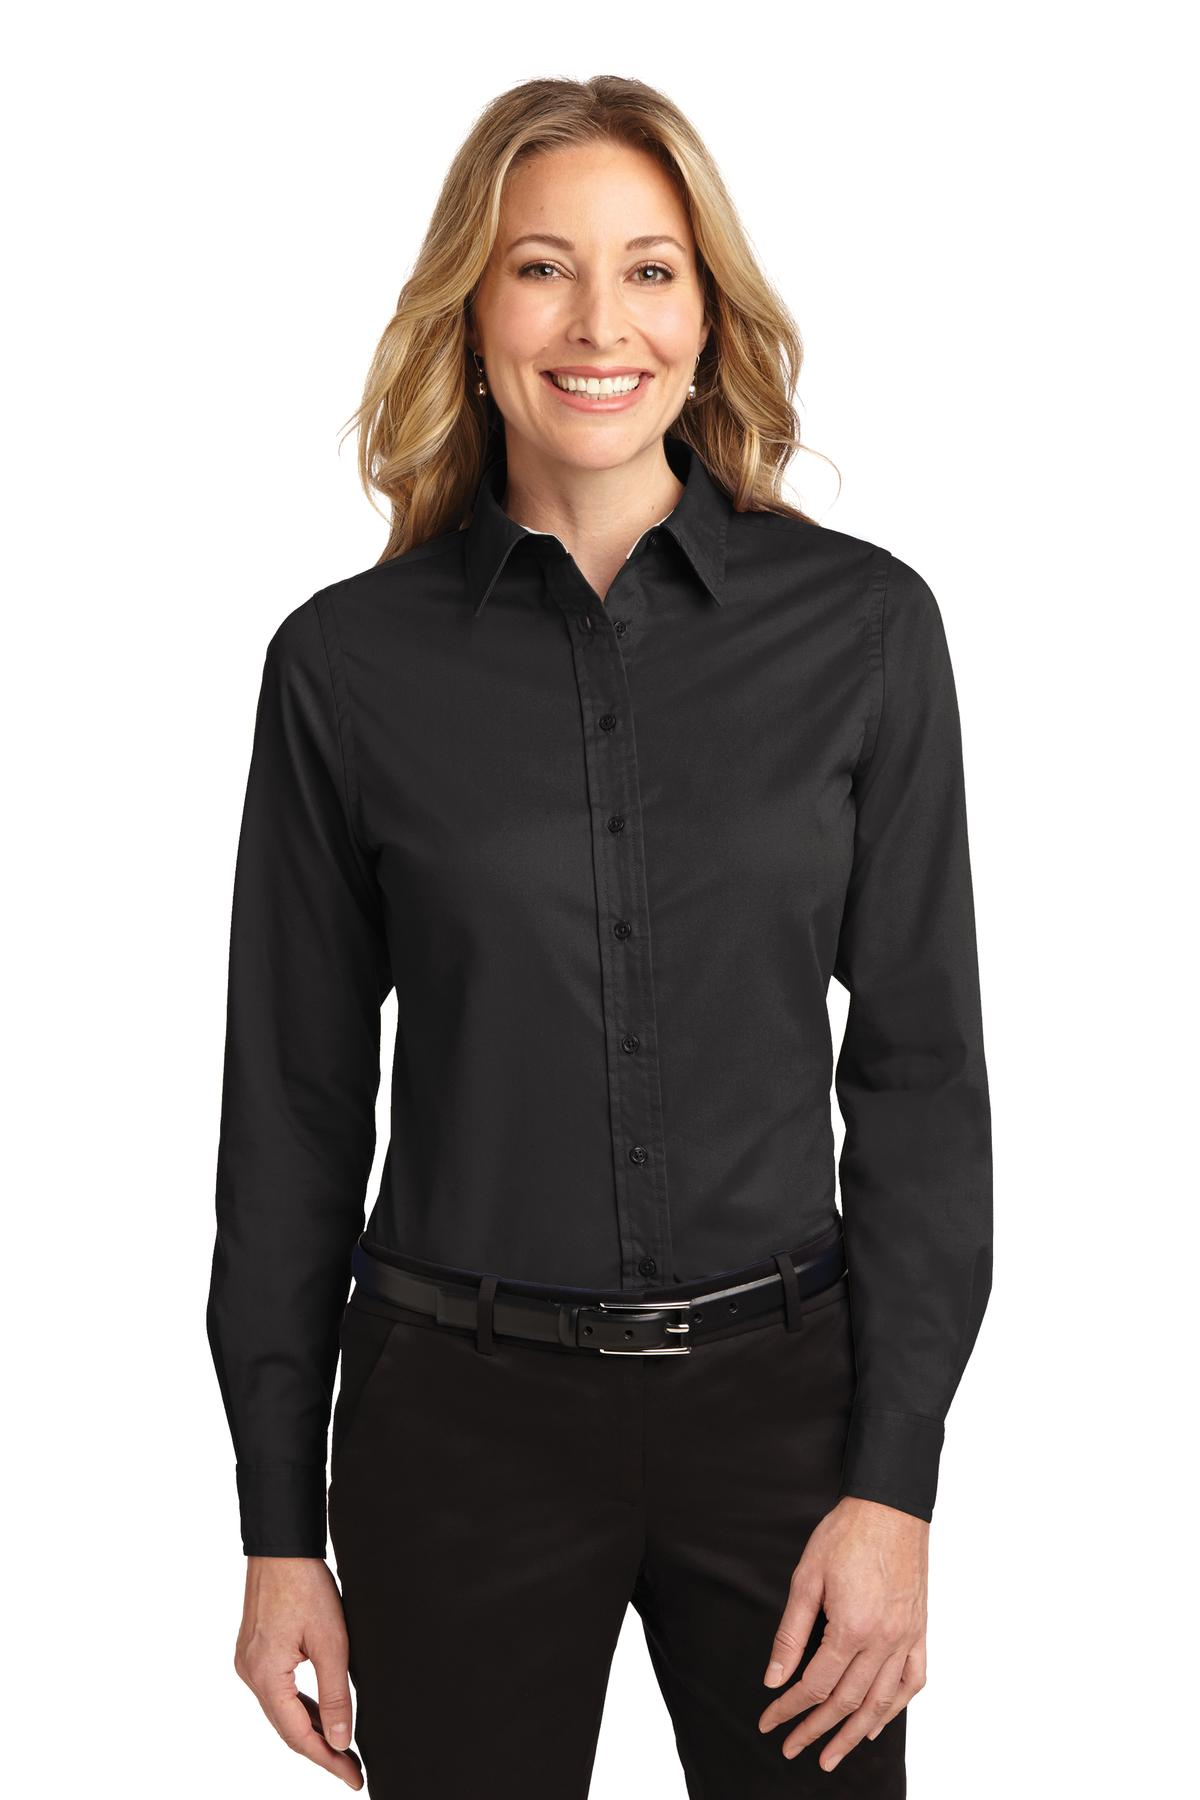 Port Authority ®  Ladies Long Sleeve Easy Care Shirt.  L608 - Black/ Light Stone